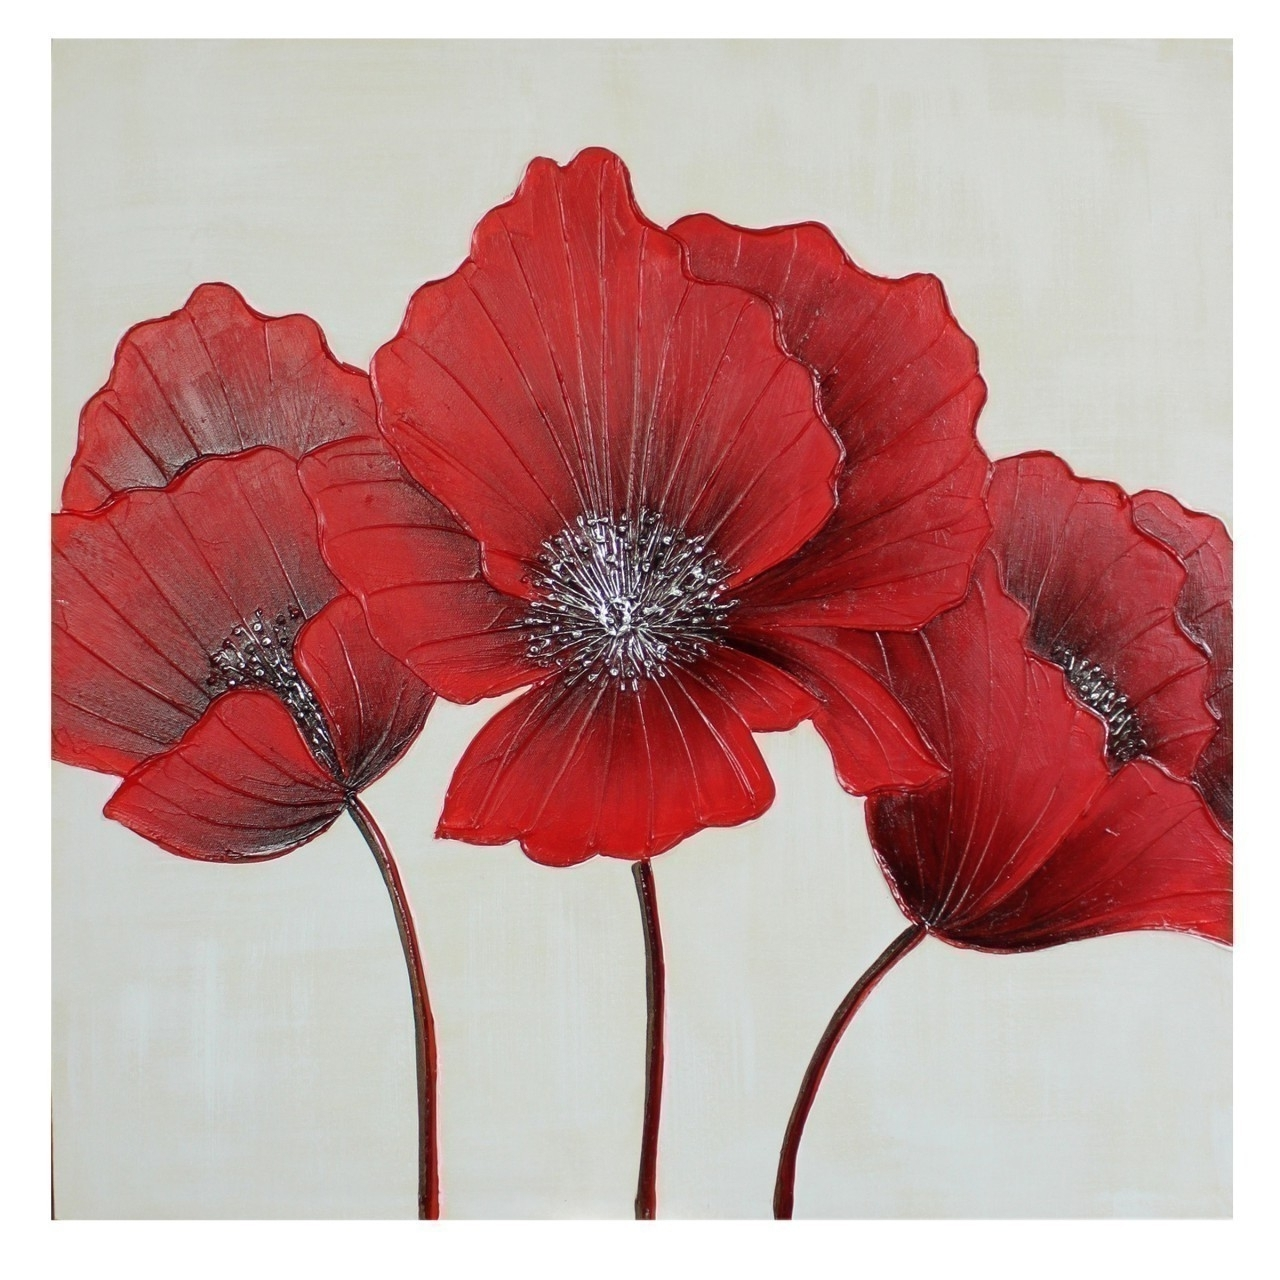 Flower Canvas Wall Art 80 X 80Cm Regarding Most Recent Red Flowers Canvas Wall Art (View 2 of 15)